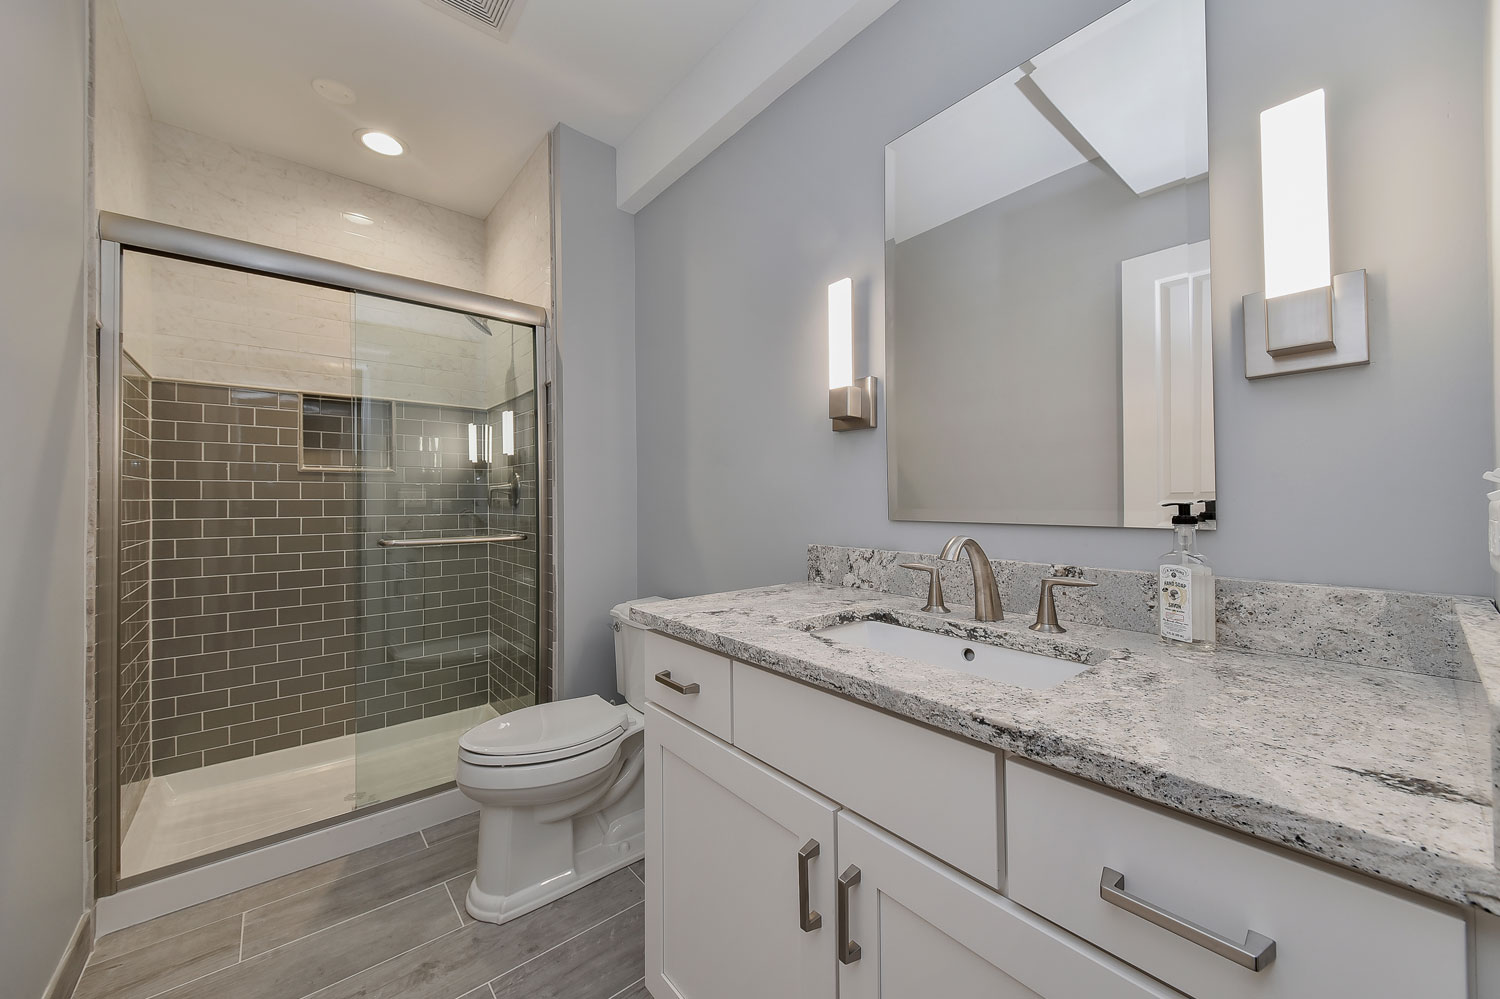 Brian Mary S Basement Bathroom Pictures Home Remodeling Contractors Sebring Design Build